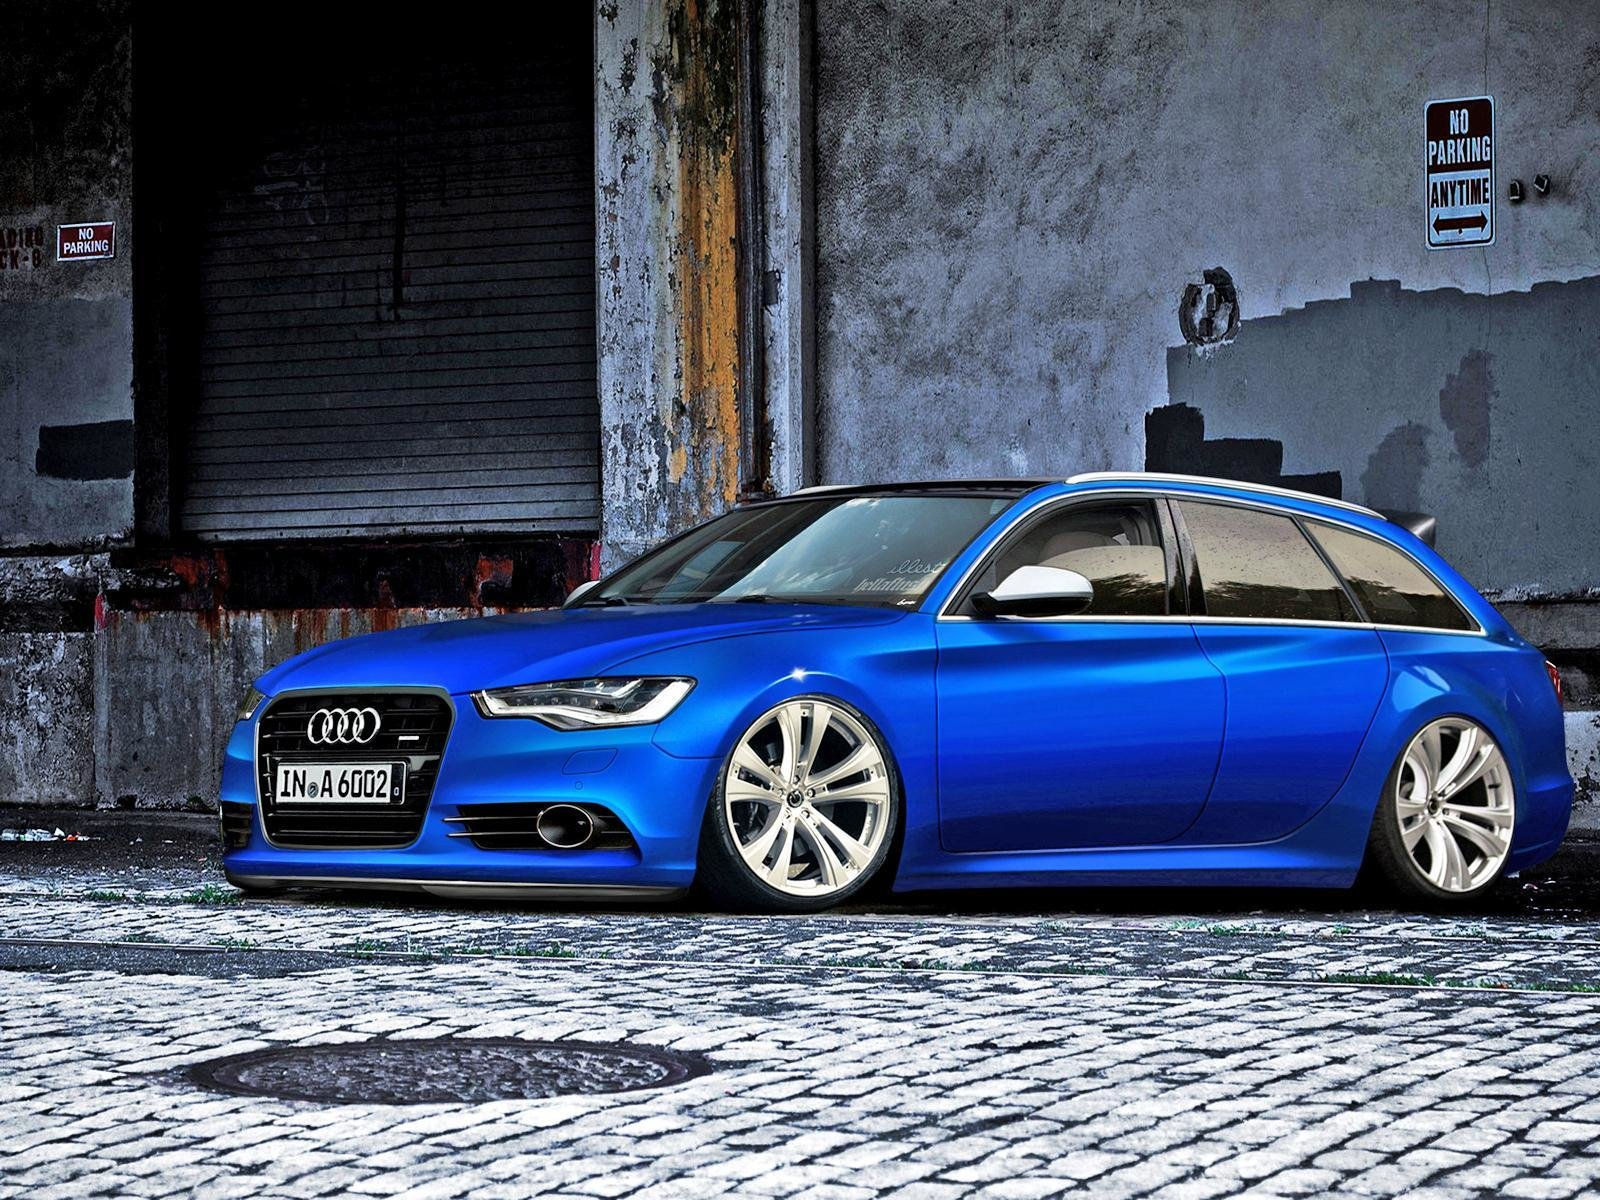 Latest Audi A6 Wallpaper Hd Full Hd Pictures Free Download